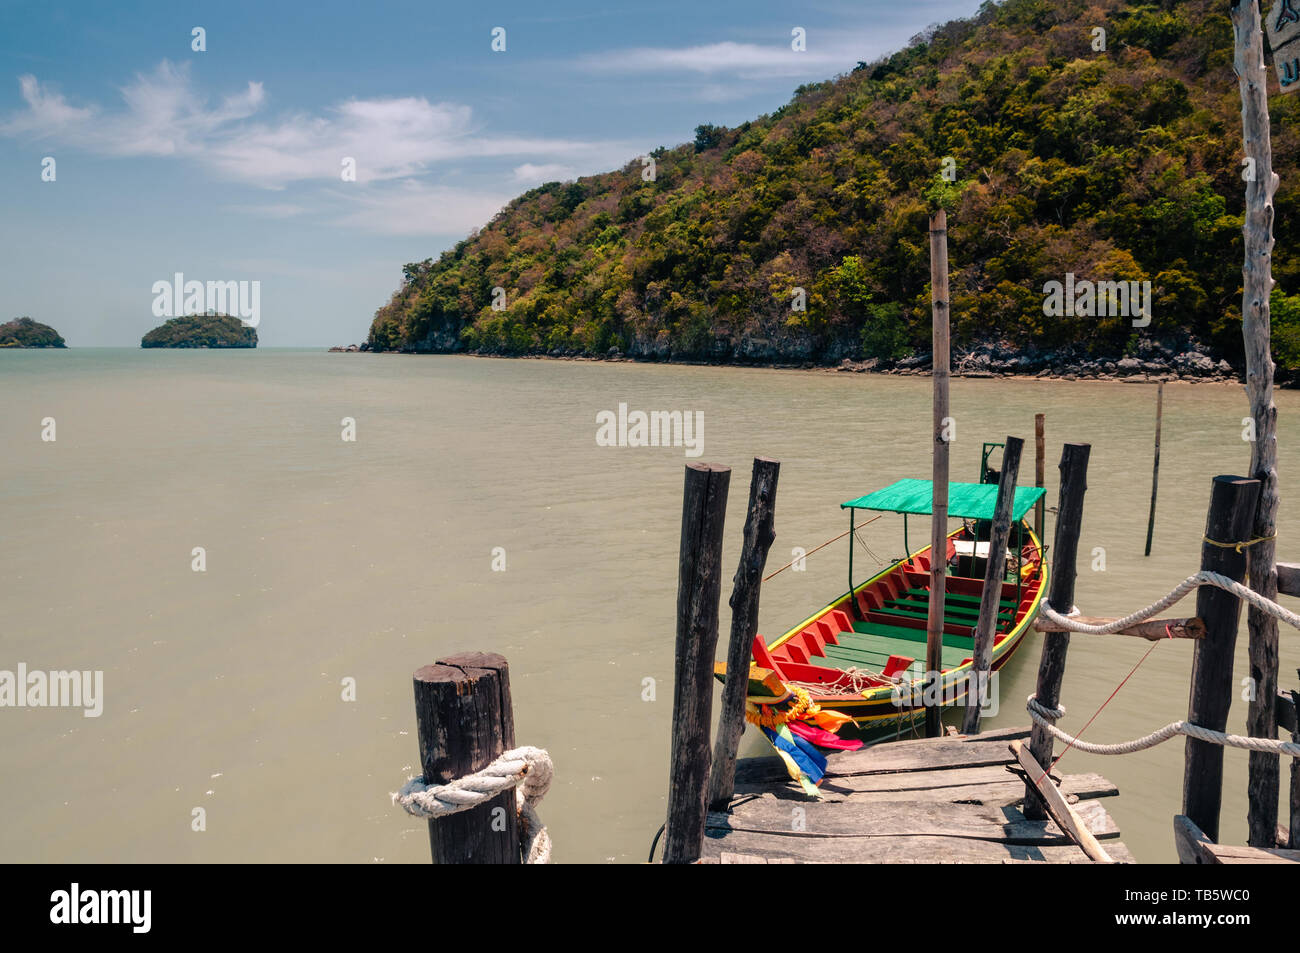 Wooden pier and thai long tail boat in Talet bay at Nakhon Si Thammarat province of Thailand. - Stock Image